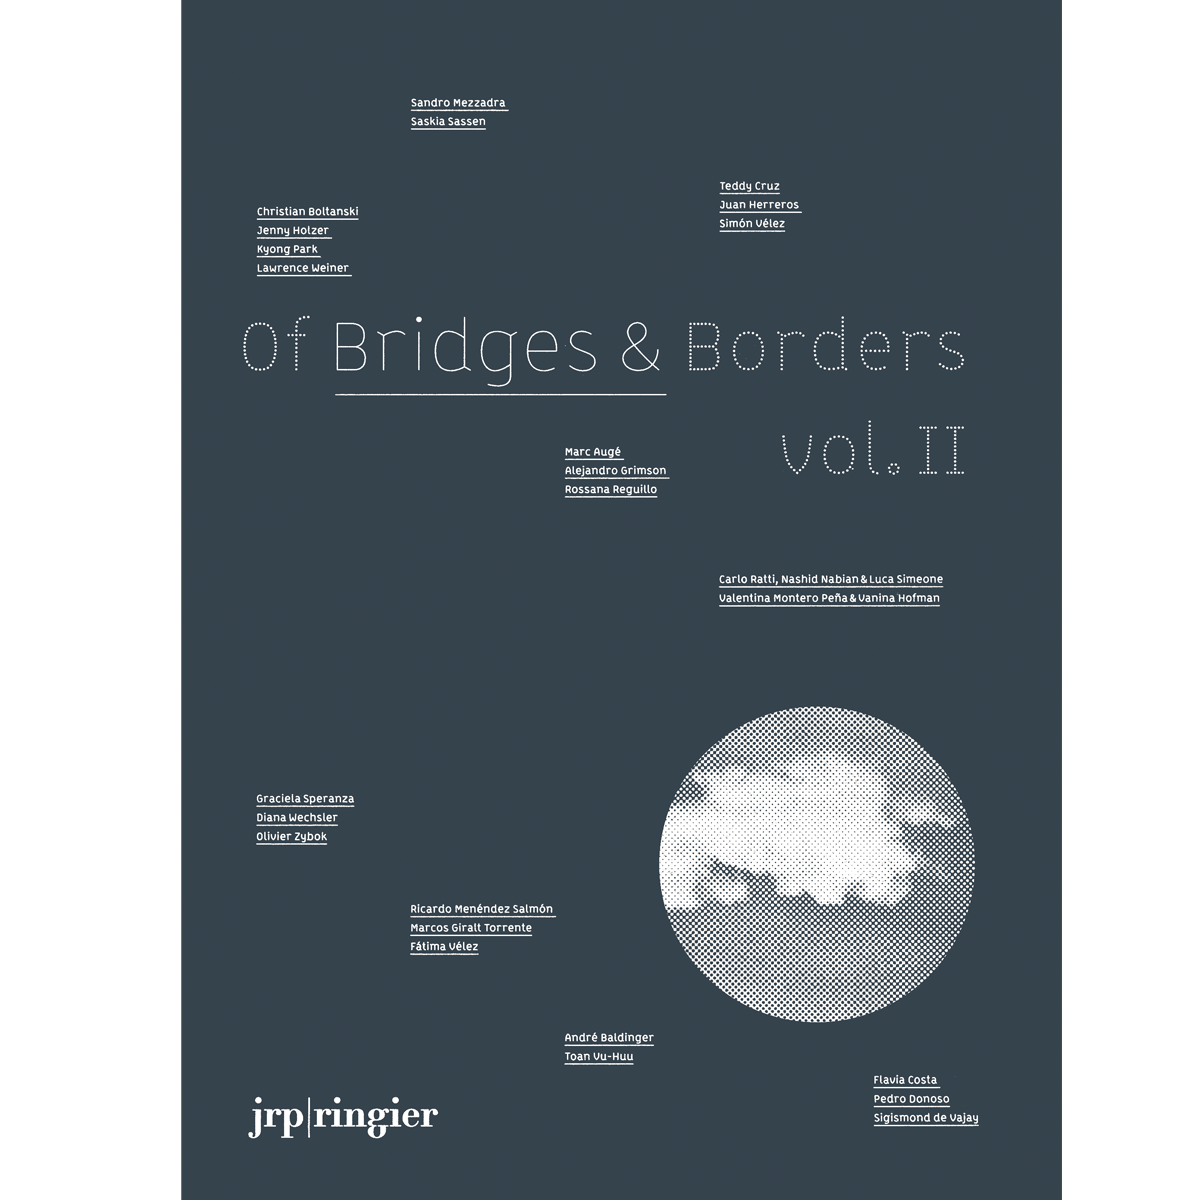 Of Bridges & Borders, vol. II